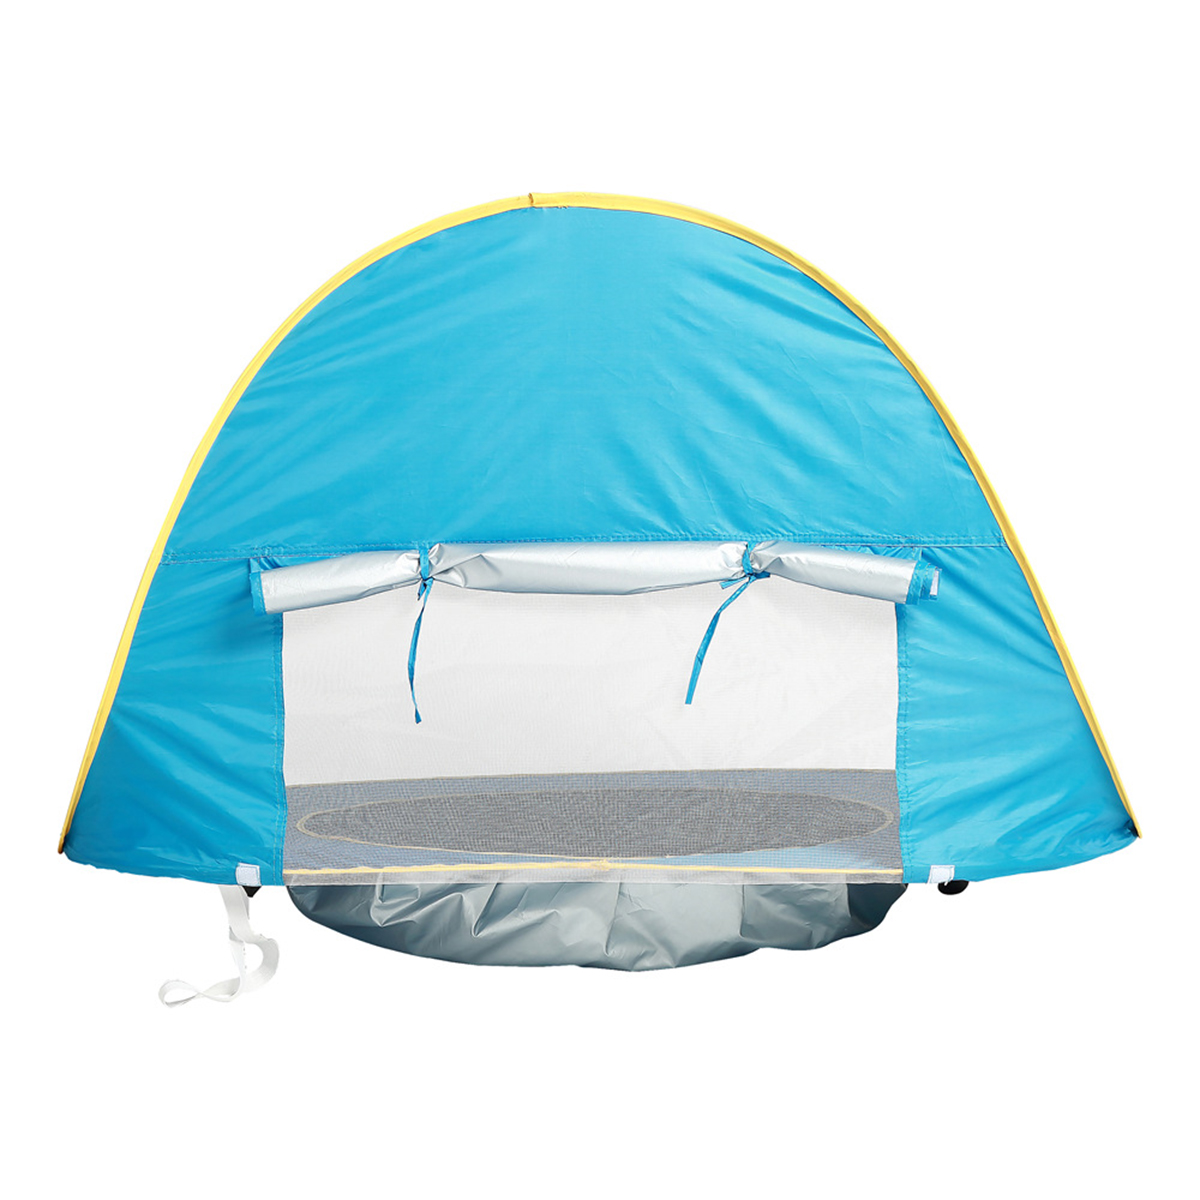 Infant Baby Pop Up Camping Beach Tent Waterproof UV Sunshade Shelter With Water Pool